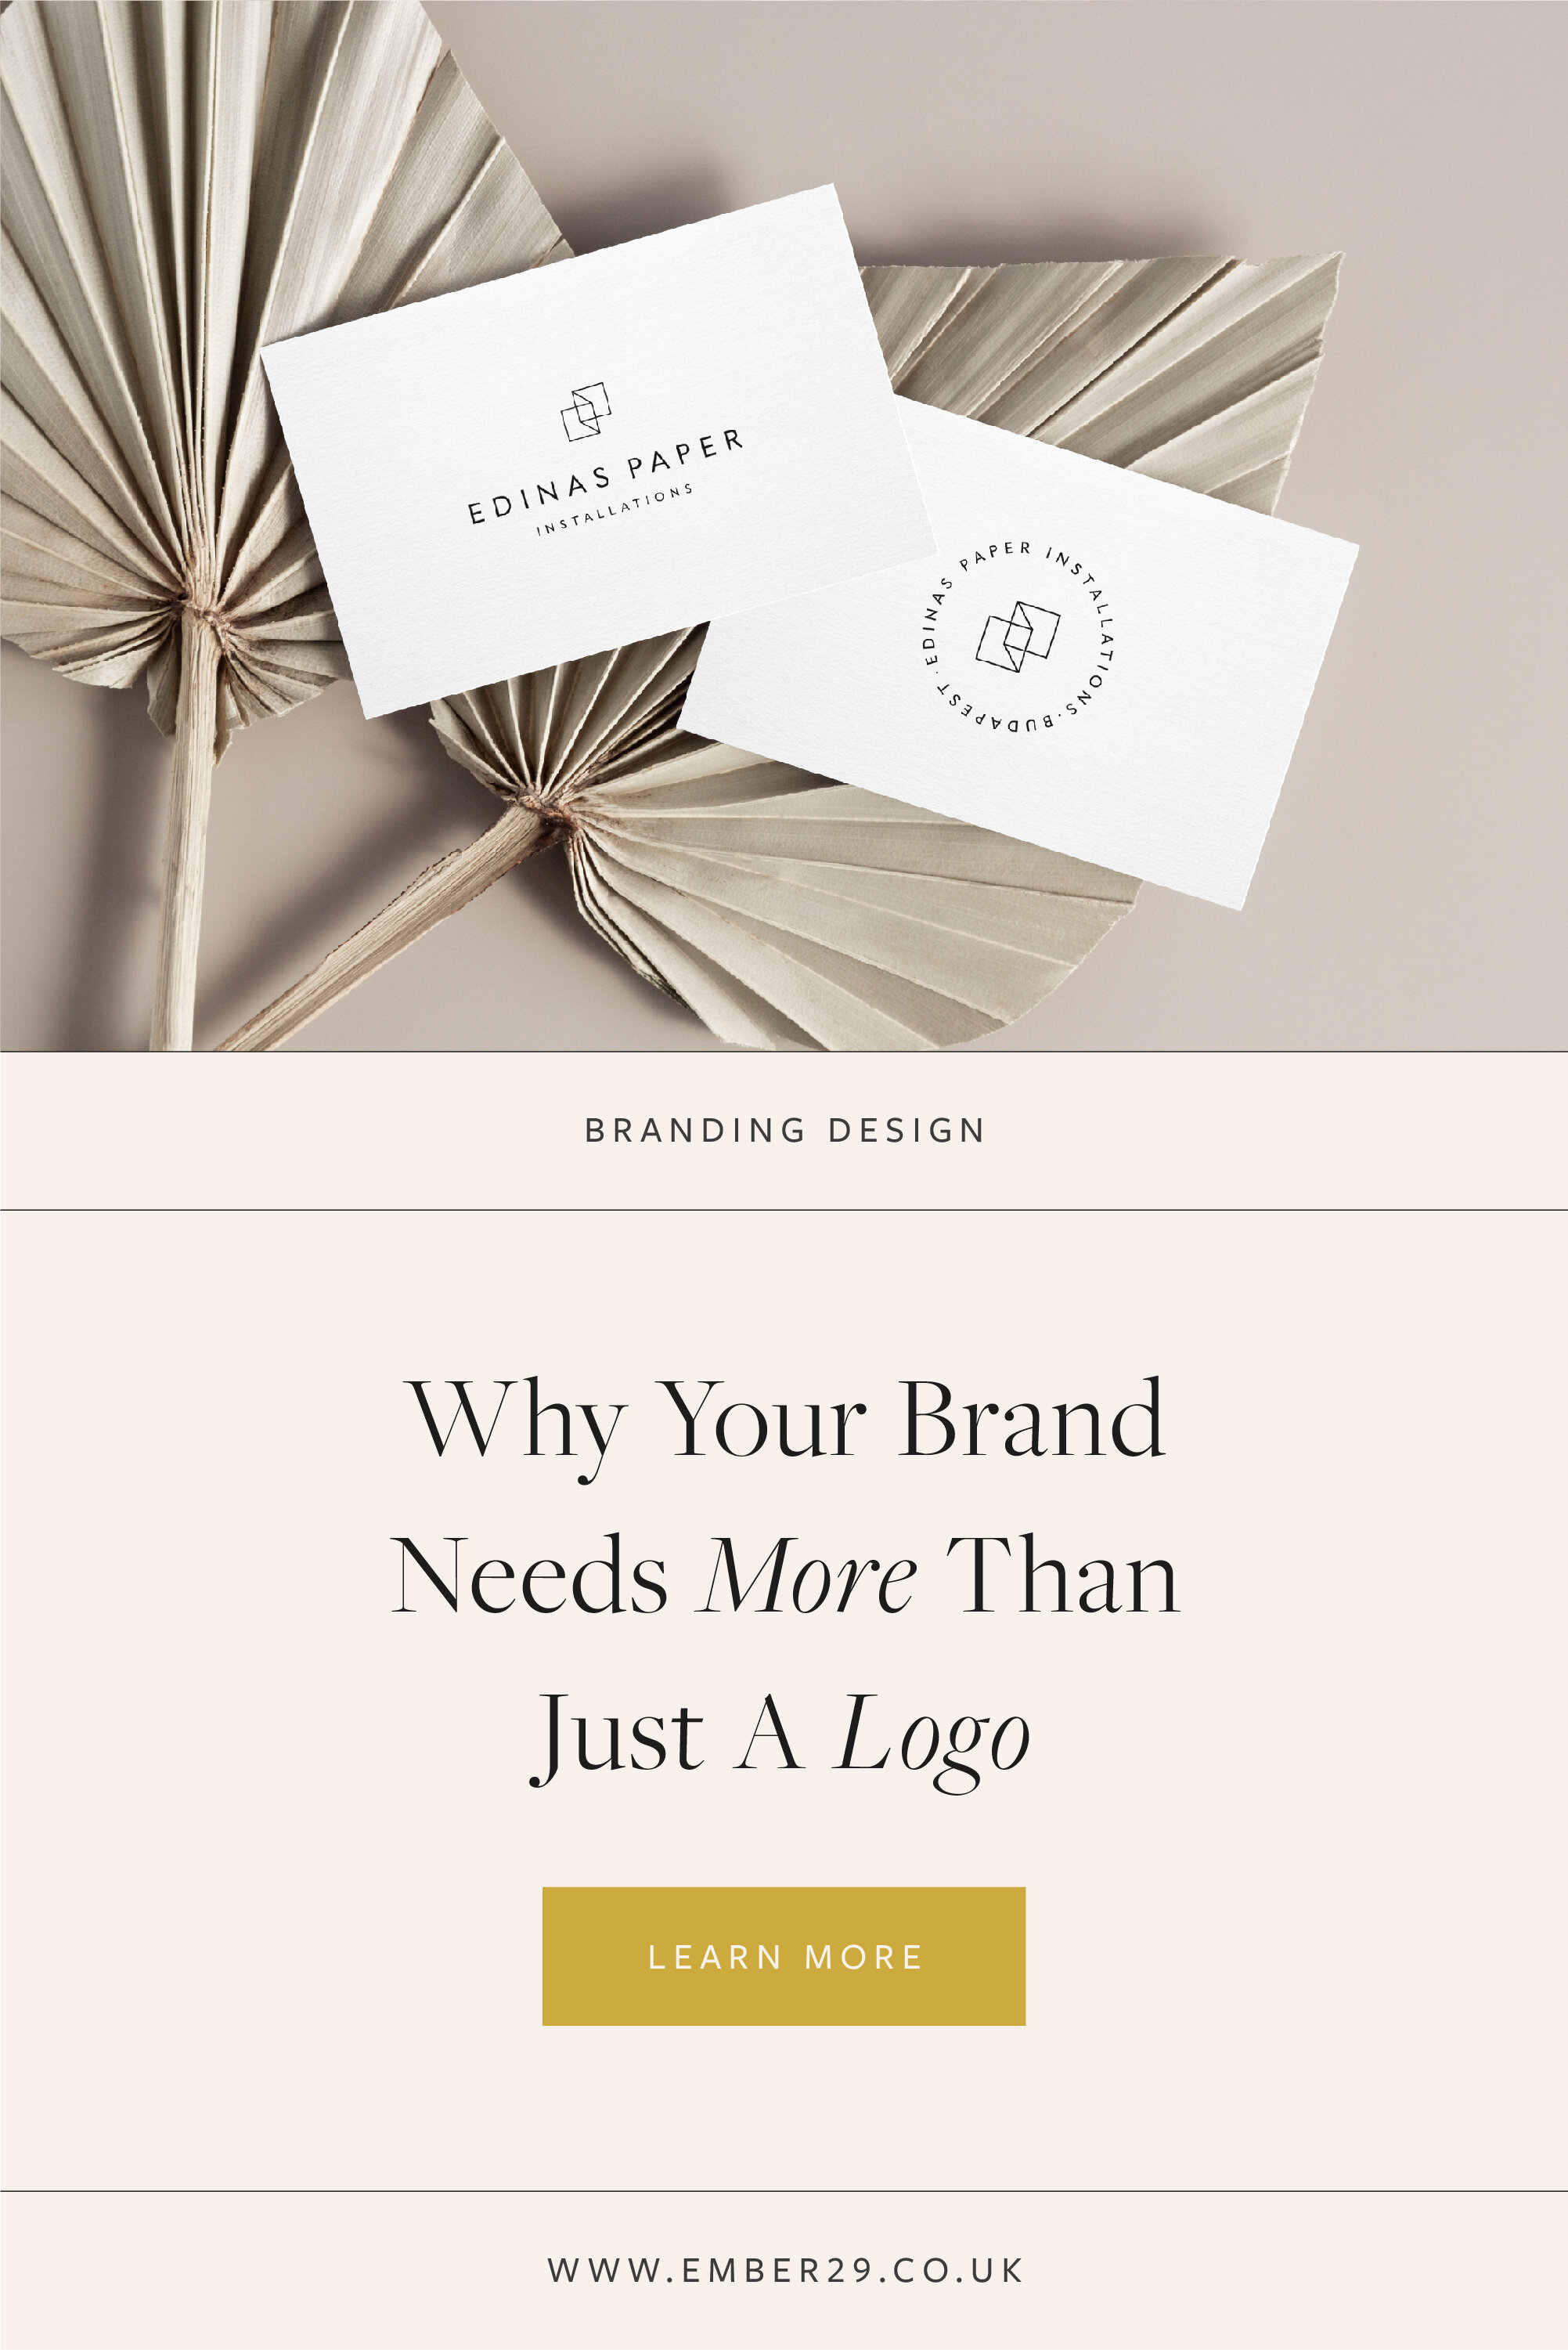 Why You Need More Than Just A Logo